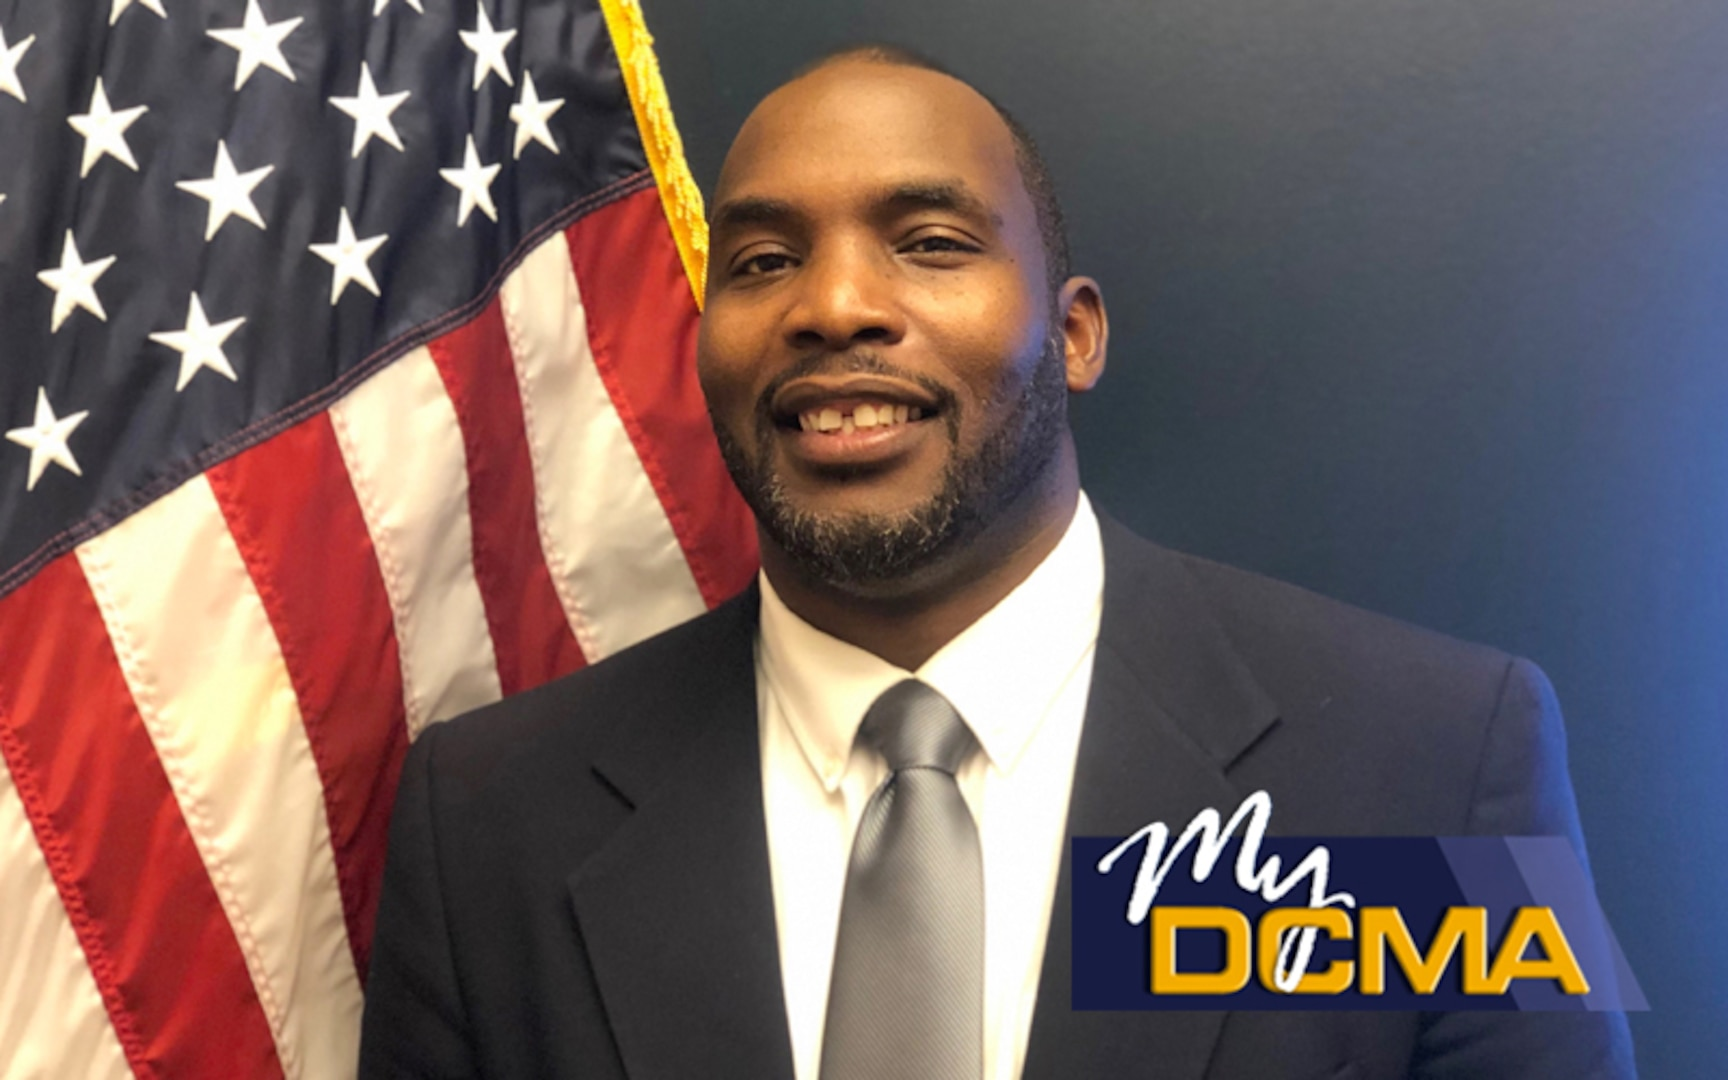 Smiling man wearing a navy blue suit stands beside the American flag